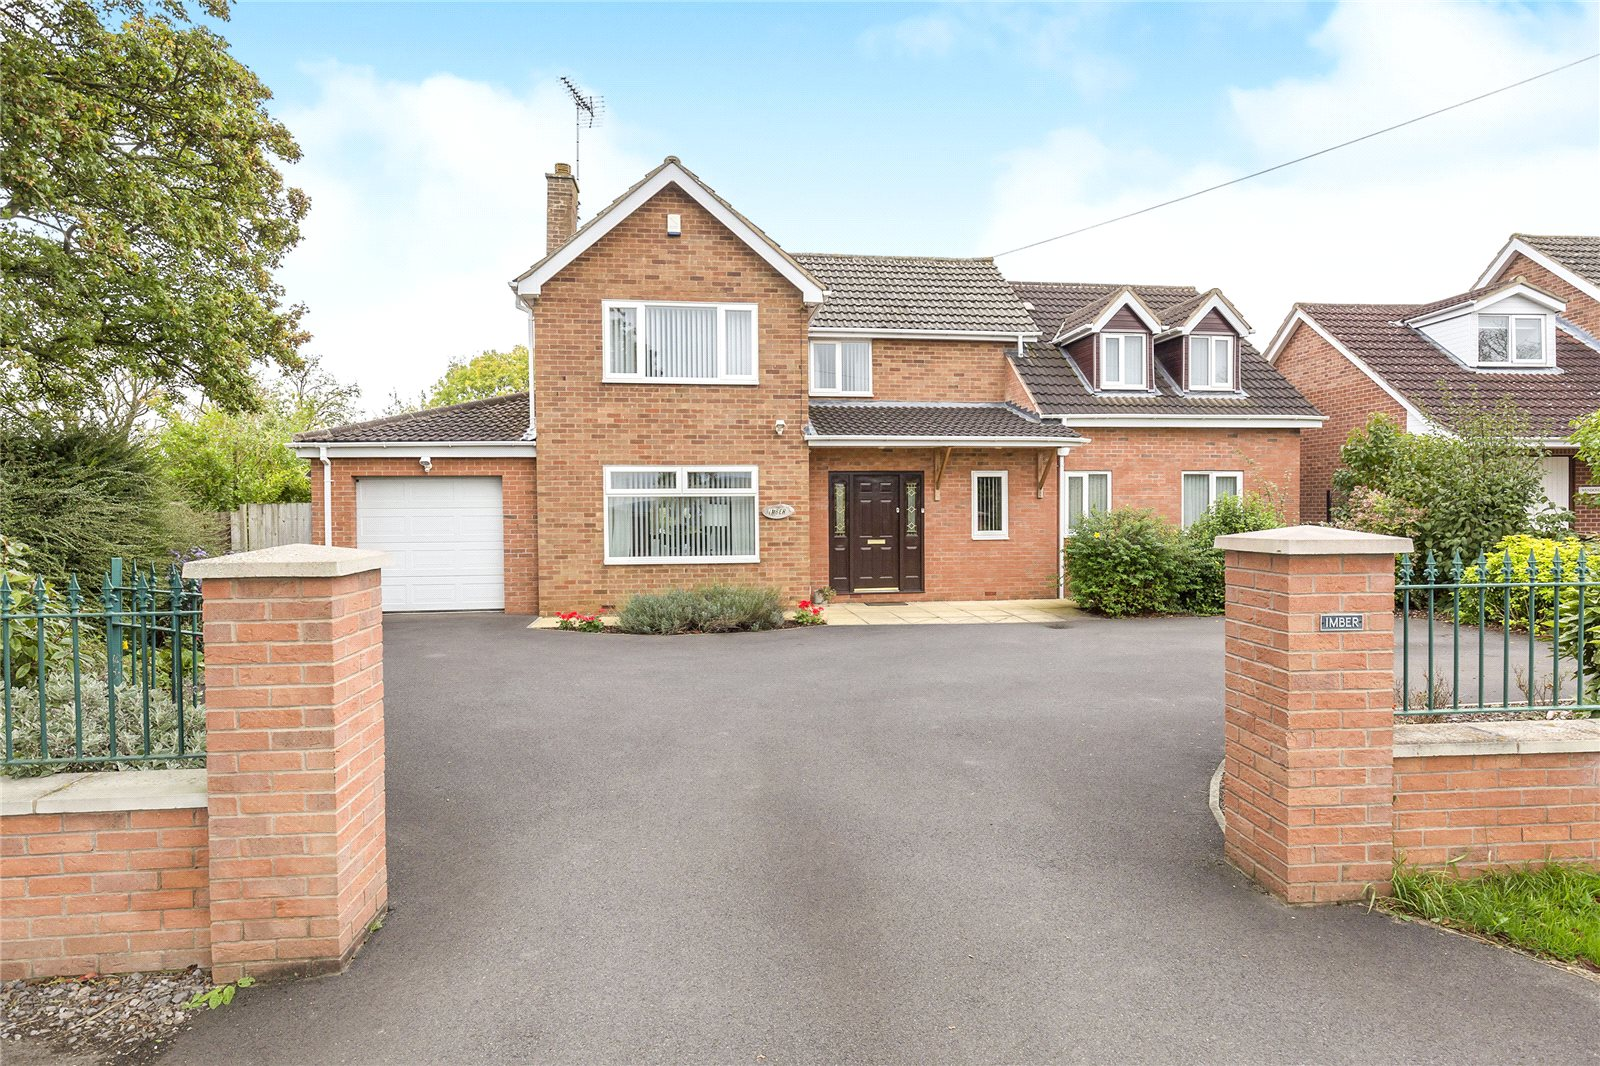 4 Bedrooms Detached House for sale in Boddington Road Staverton Village Cheltenham GL51